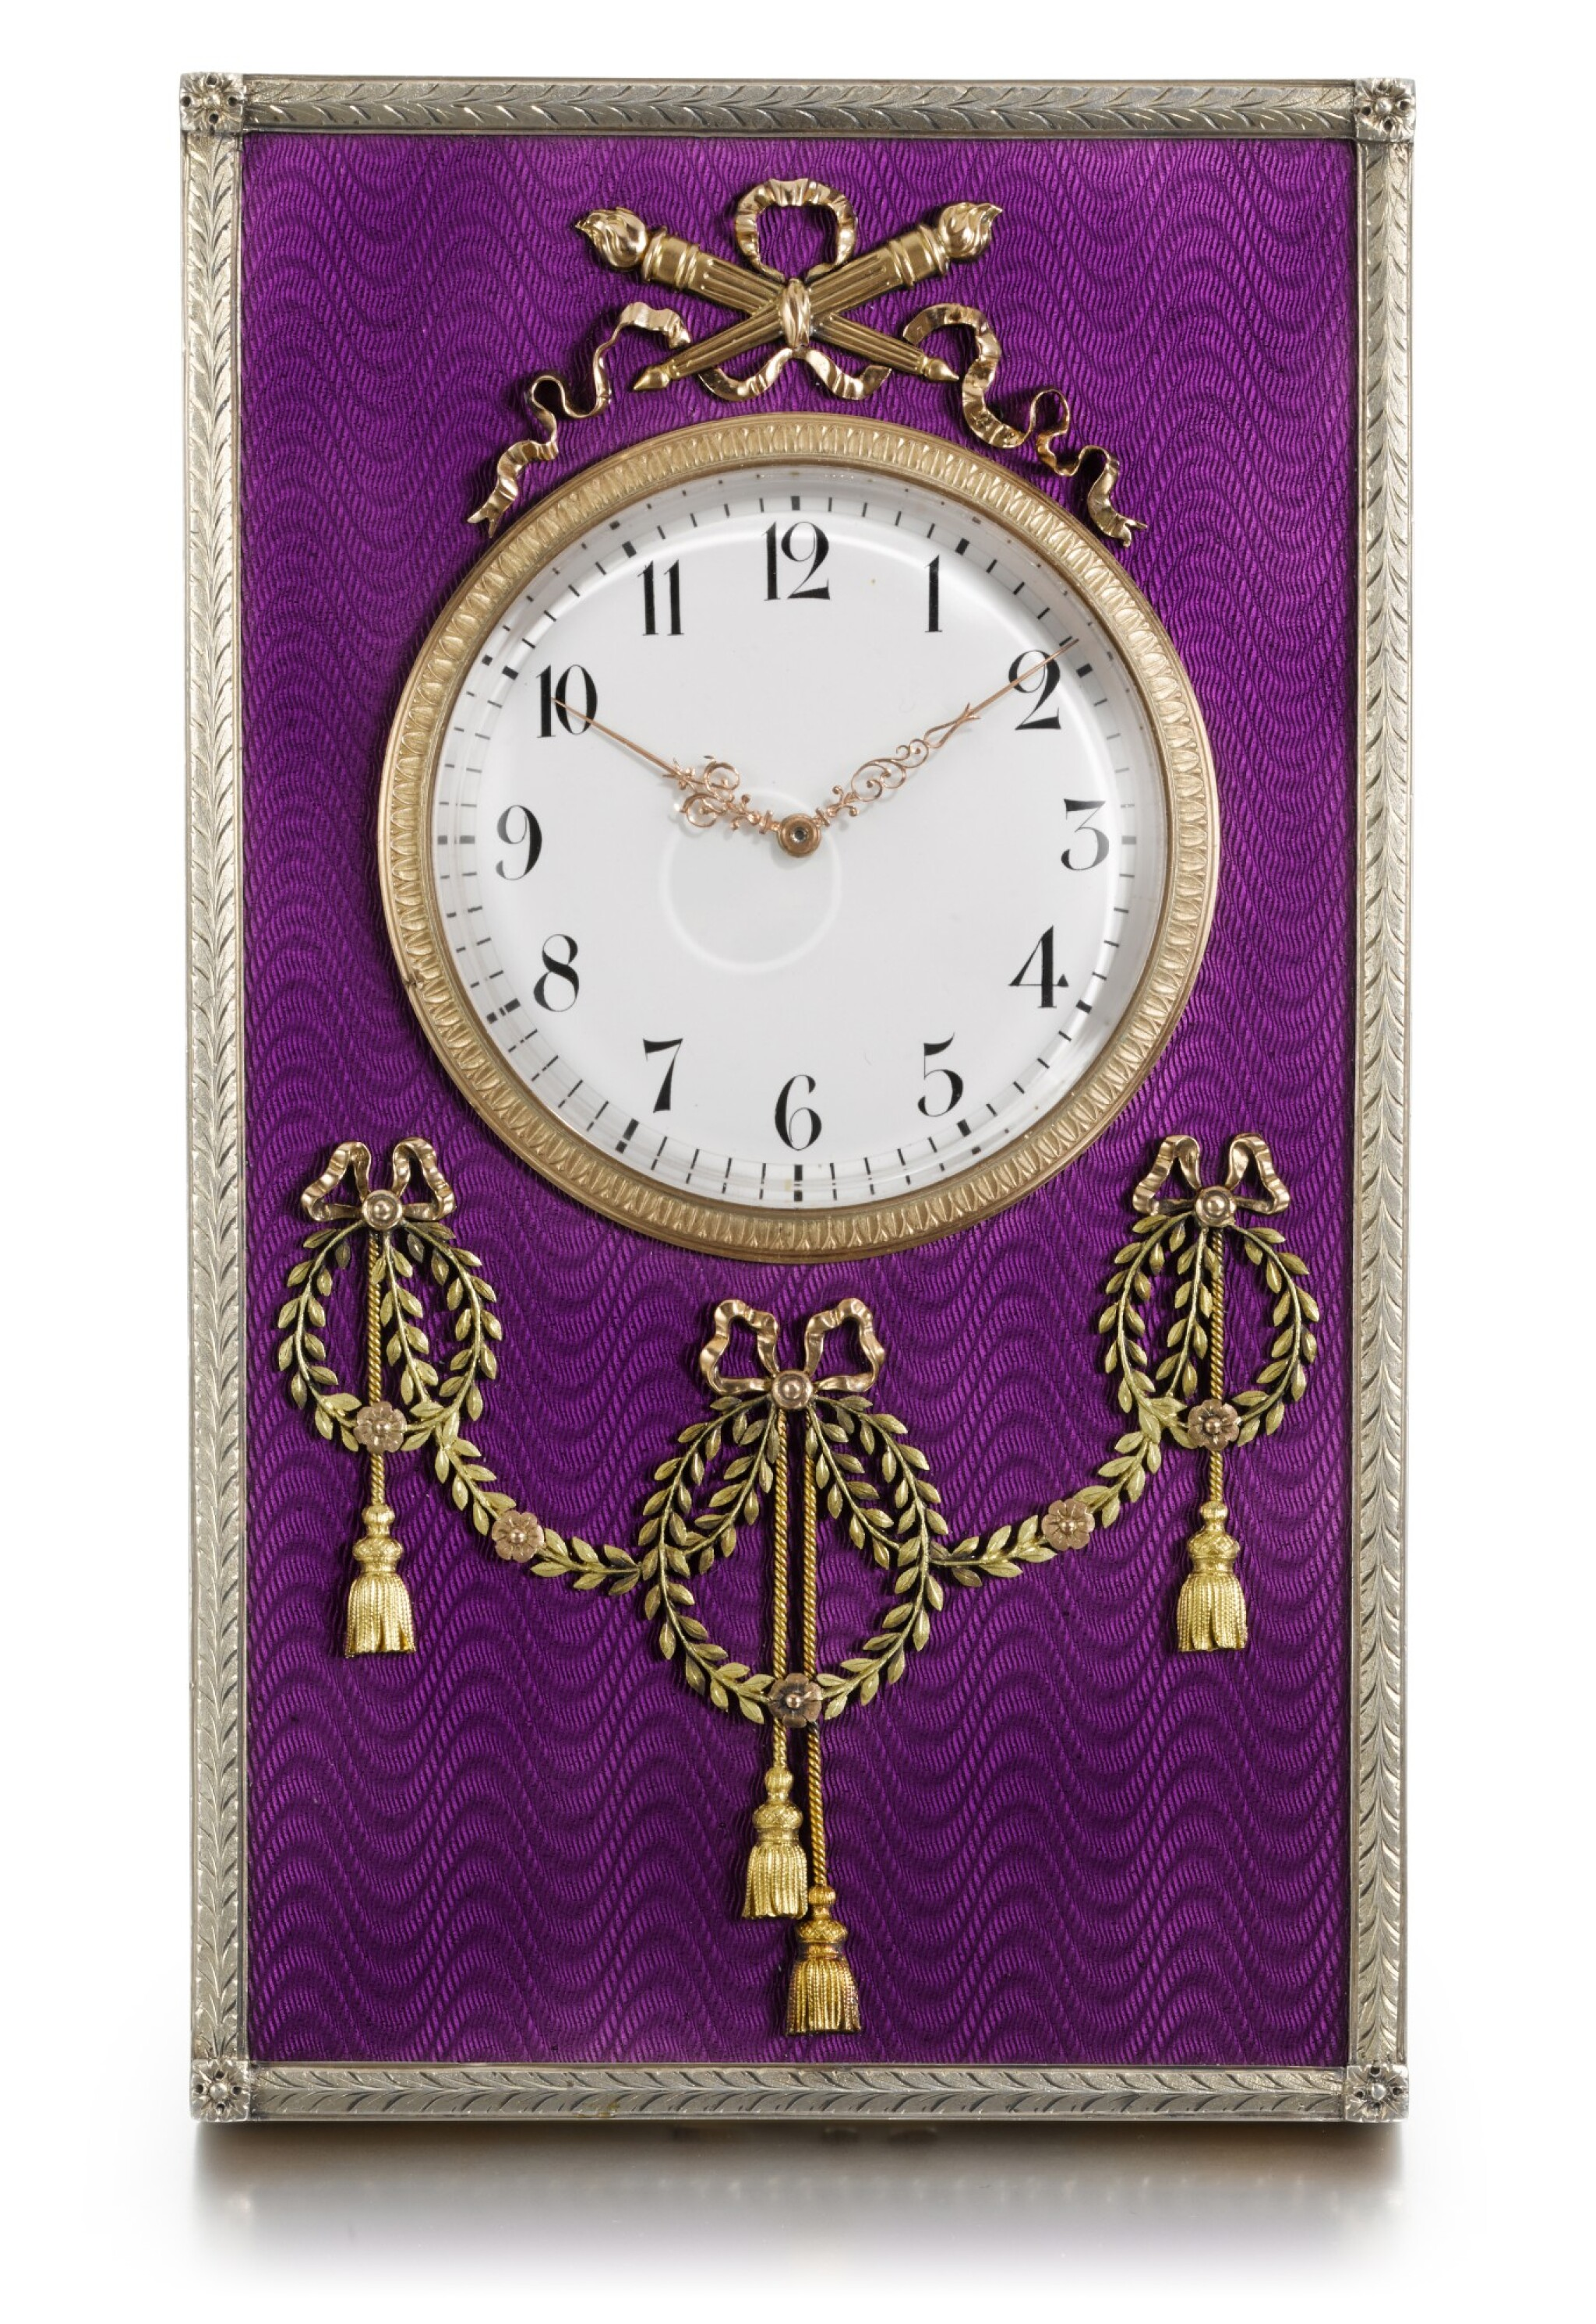 View 1 of Lot 30. A Fabergé varicolour gold-mounted, silver-gilt and guilloché enamel desk clock, workmaster Henrik Wigström, St Petersburg, 1904.